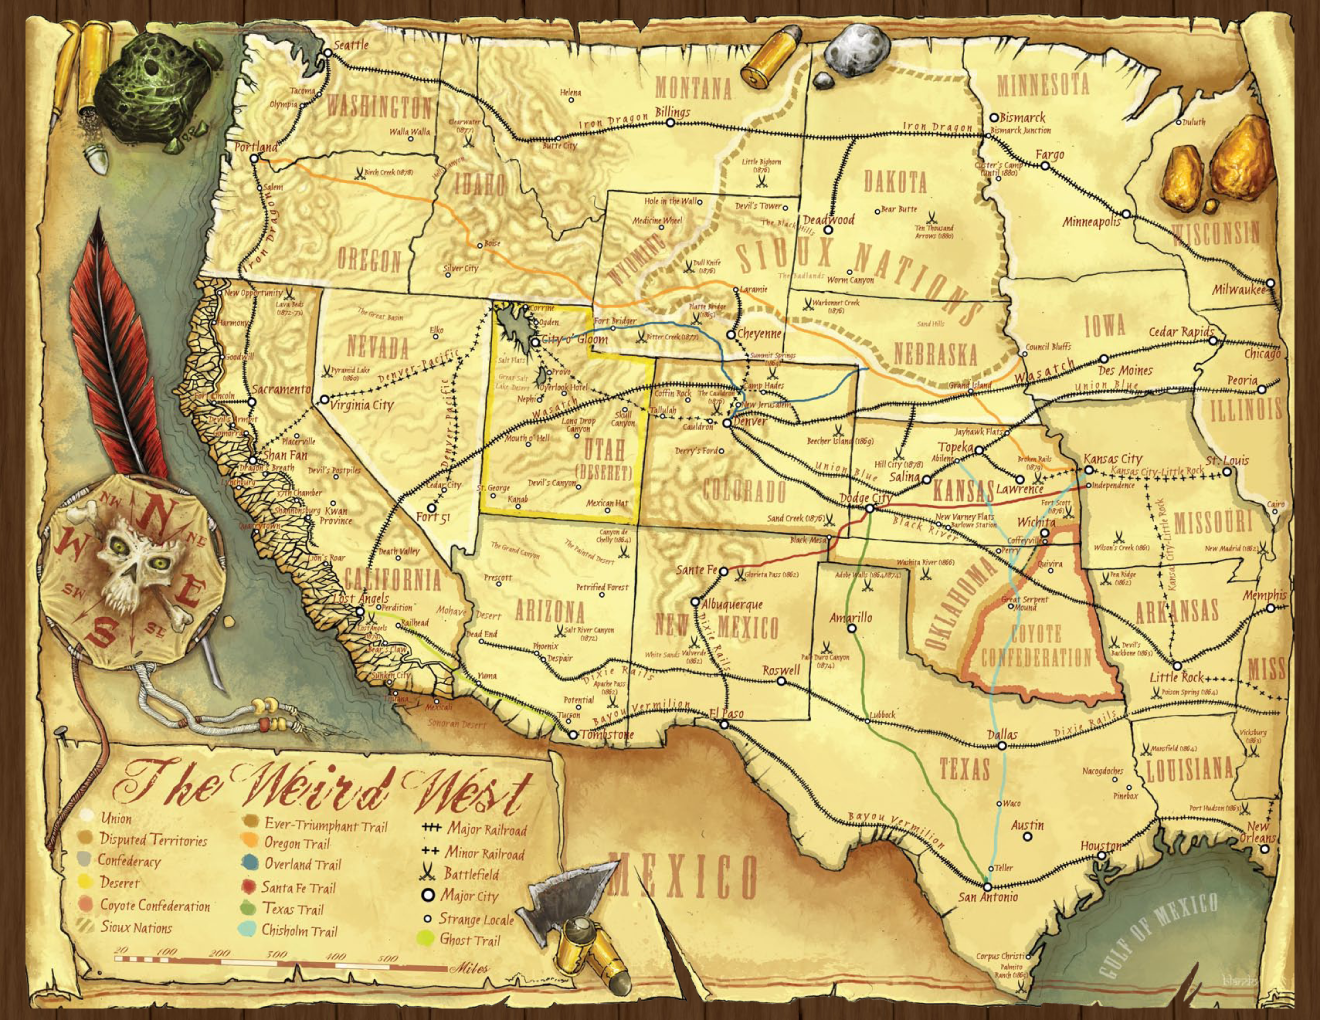 Deadlands California Map.A Map Of The Weird West As It Appears In The Deadlands Rpg